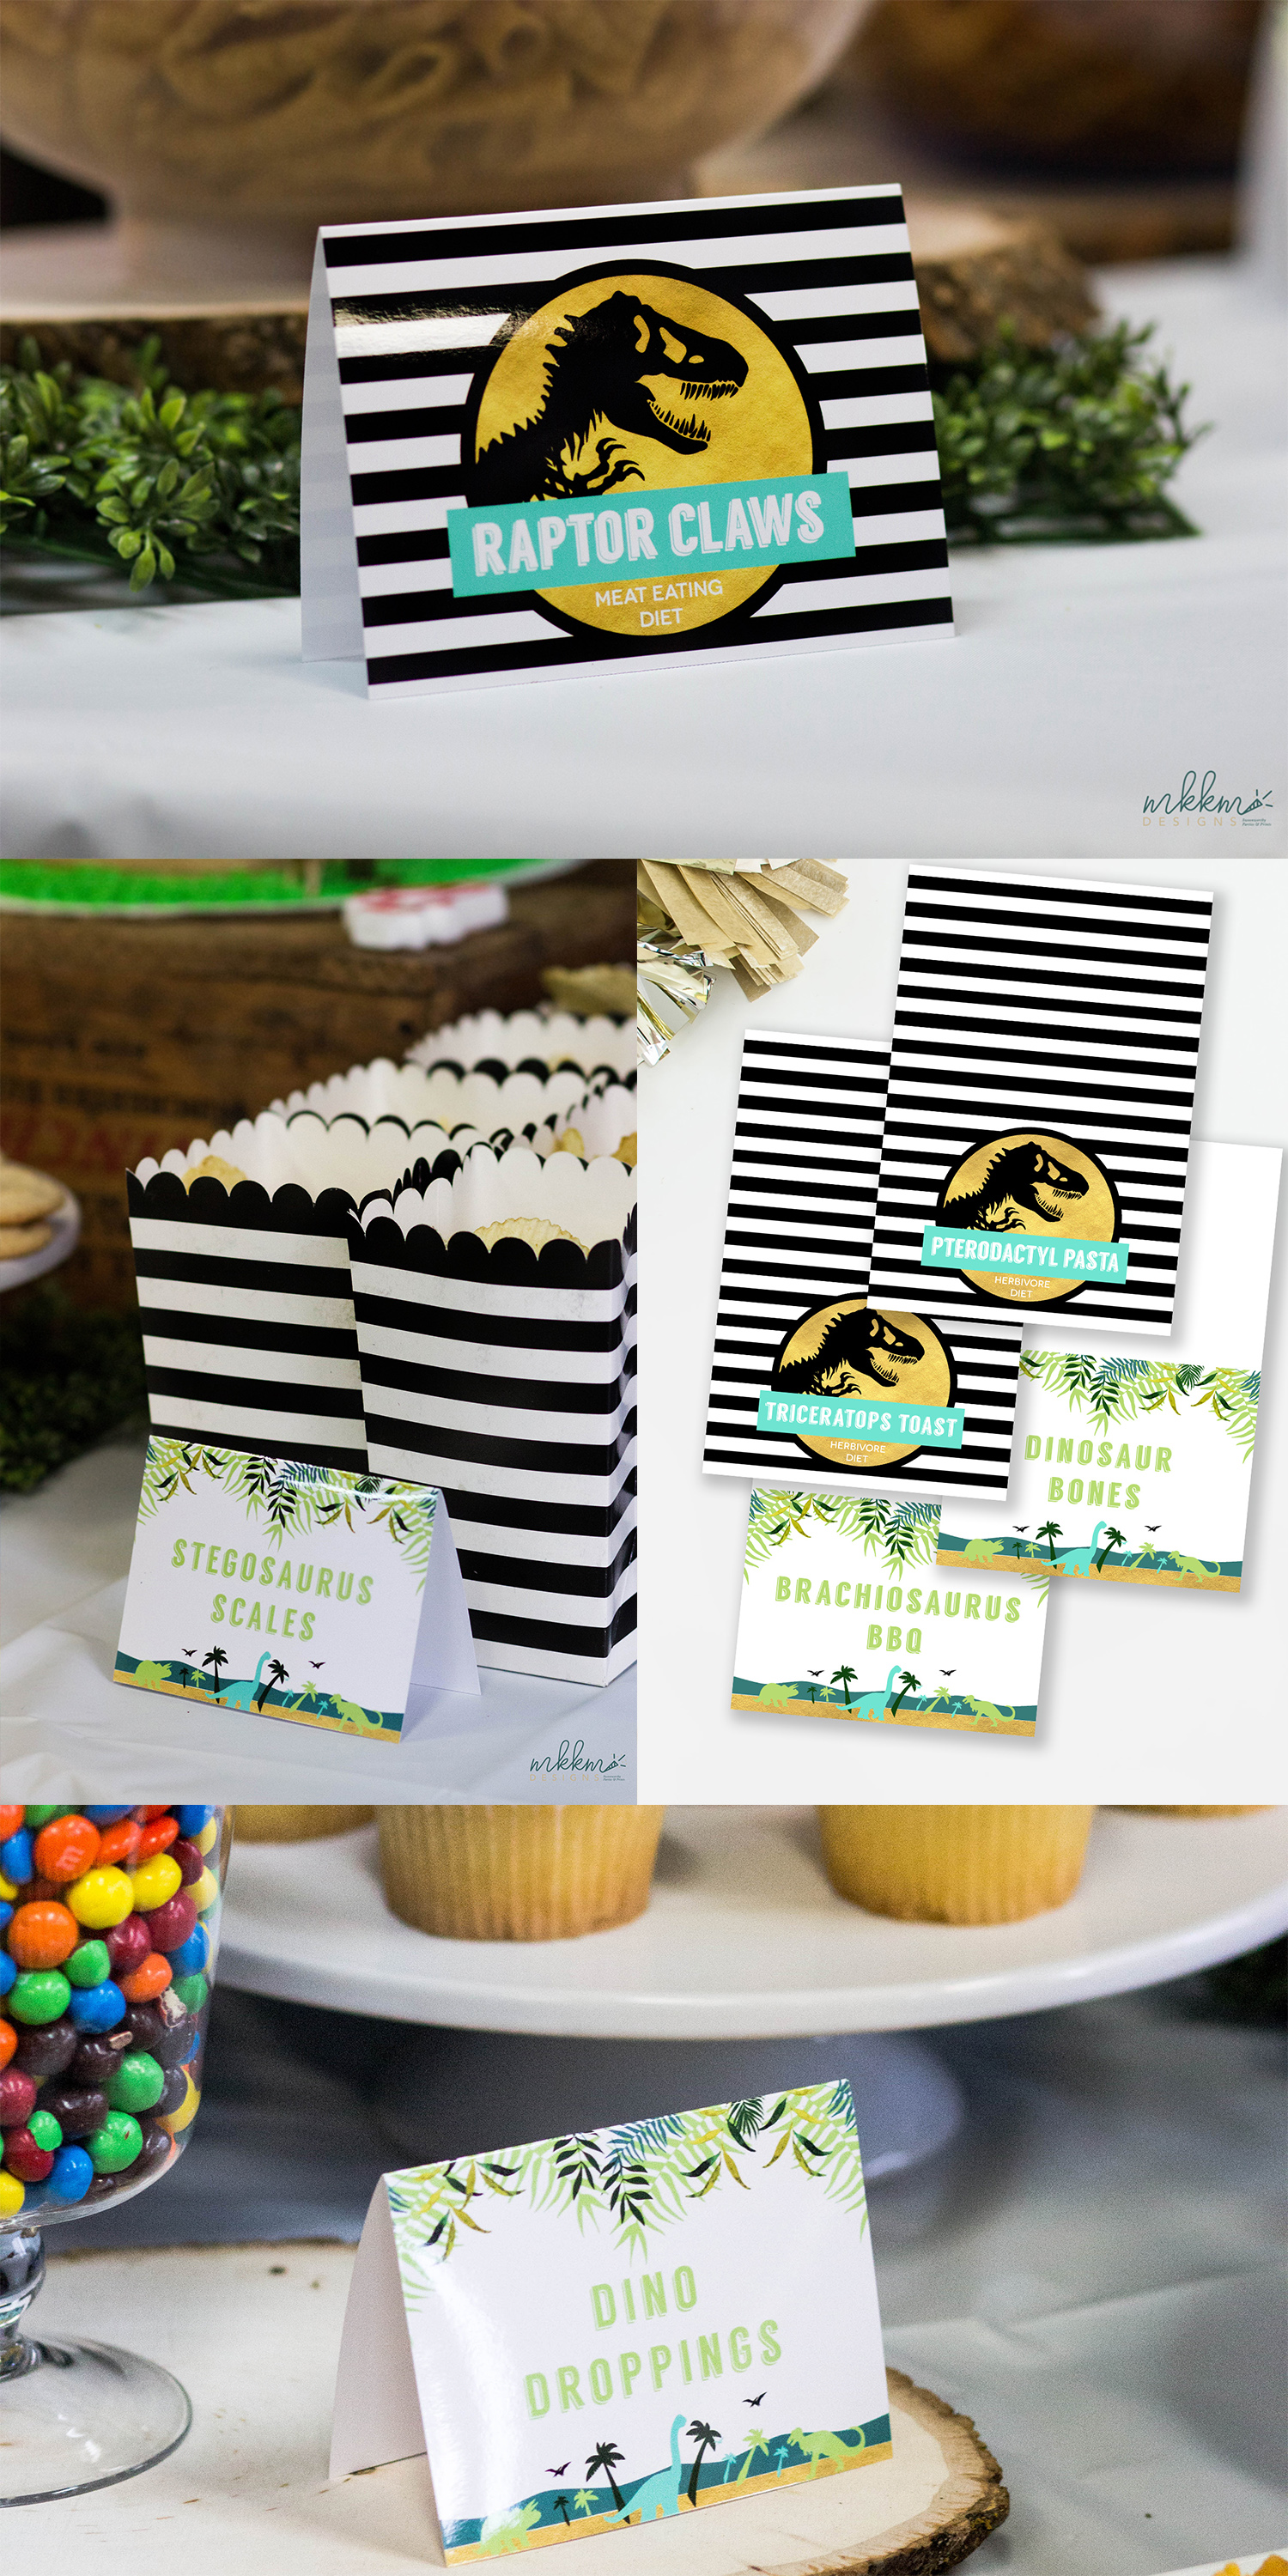 Dinosuar Party Food Ideas by MKKM Designs